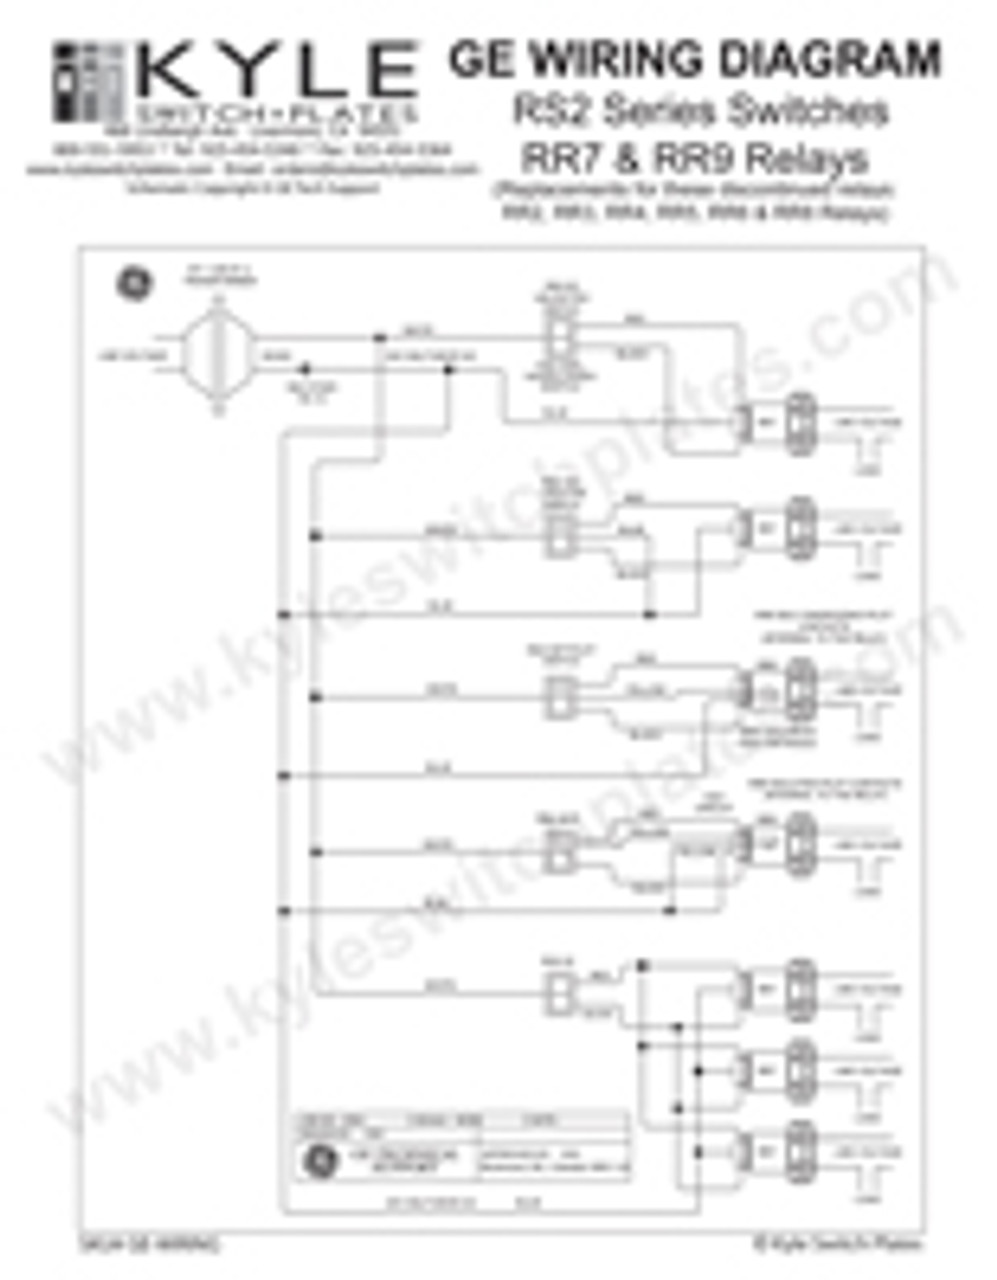 GE Low Voltage Switch & Relay Wiring Instruction Guide | Ge Rr8 Relay Wiring Diagram Schematic |  | Kyle Switch Plates